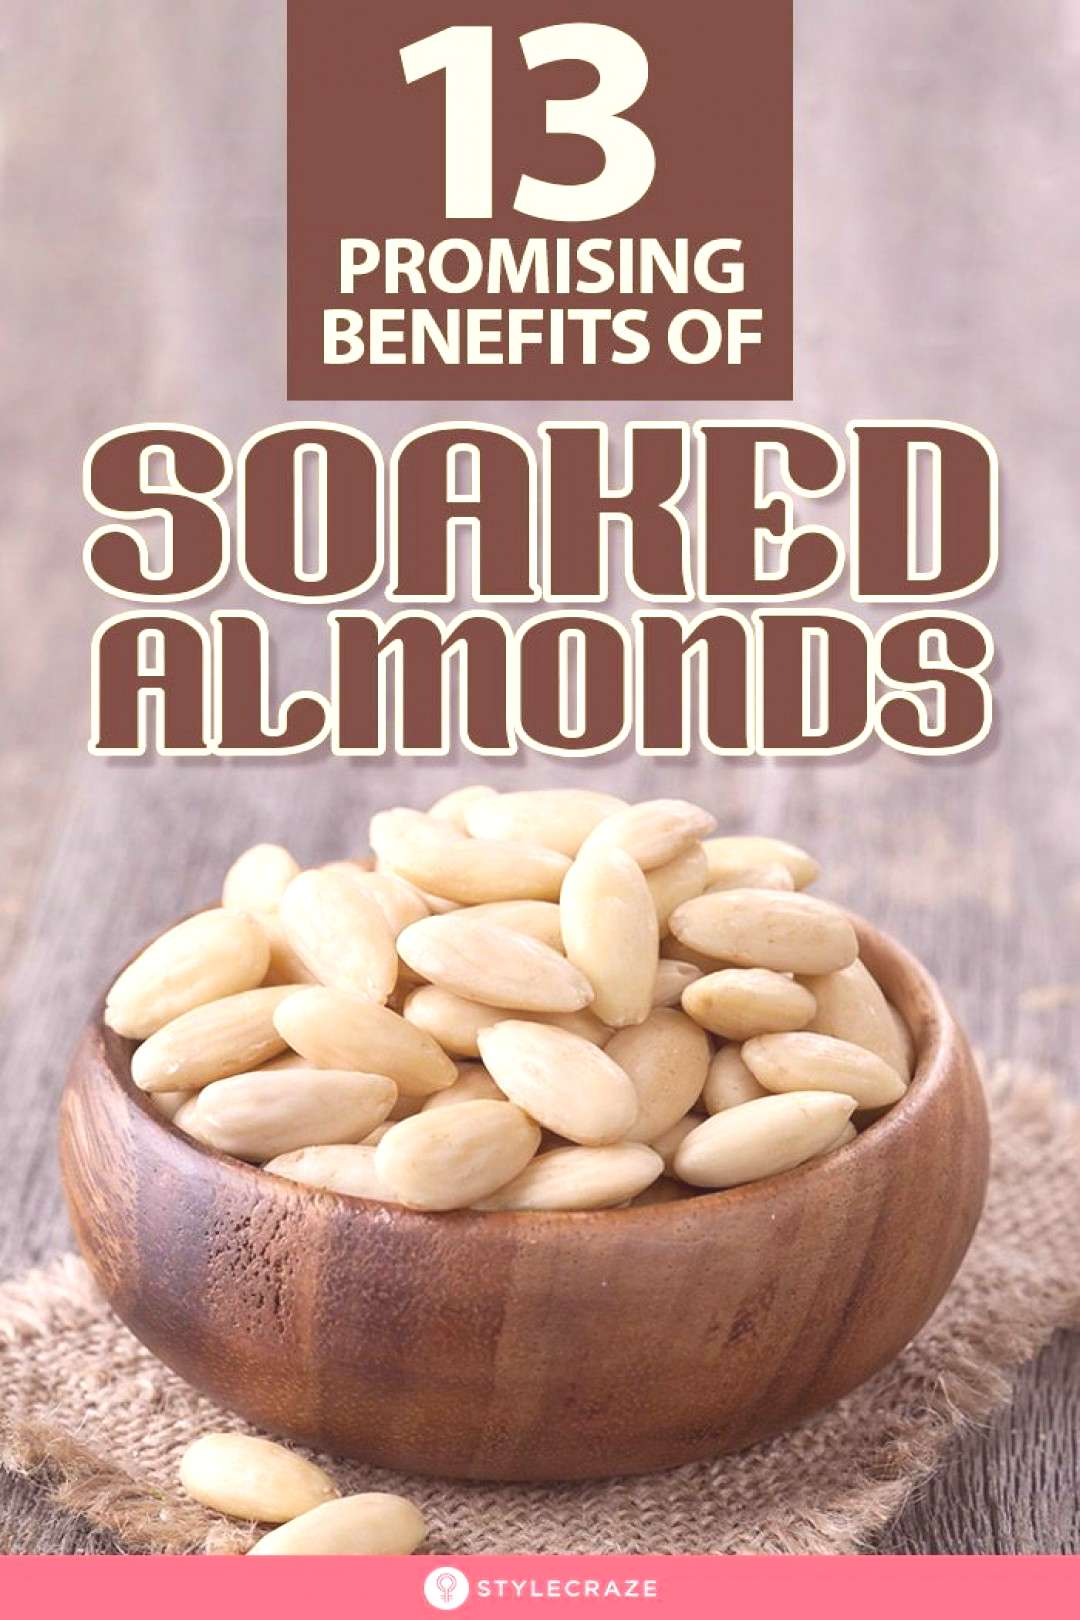 17 Best Benefits and Uses Of Soaked Almonds For Skin, Hair and Health 17 Best Benefits and Uses Of